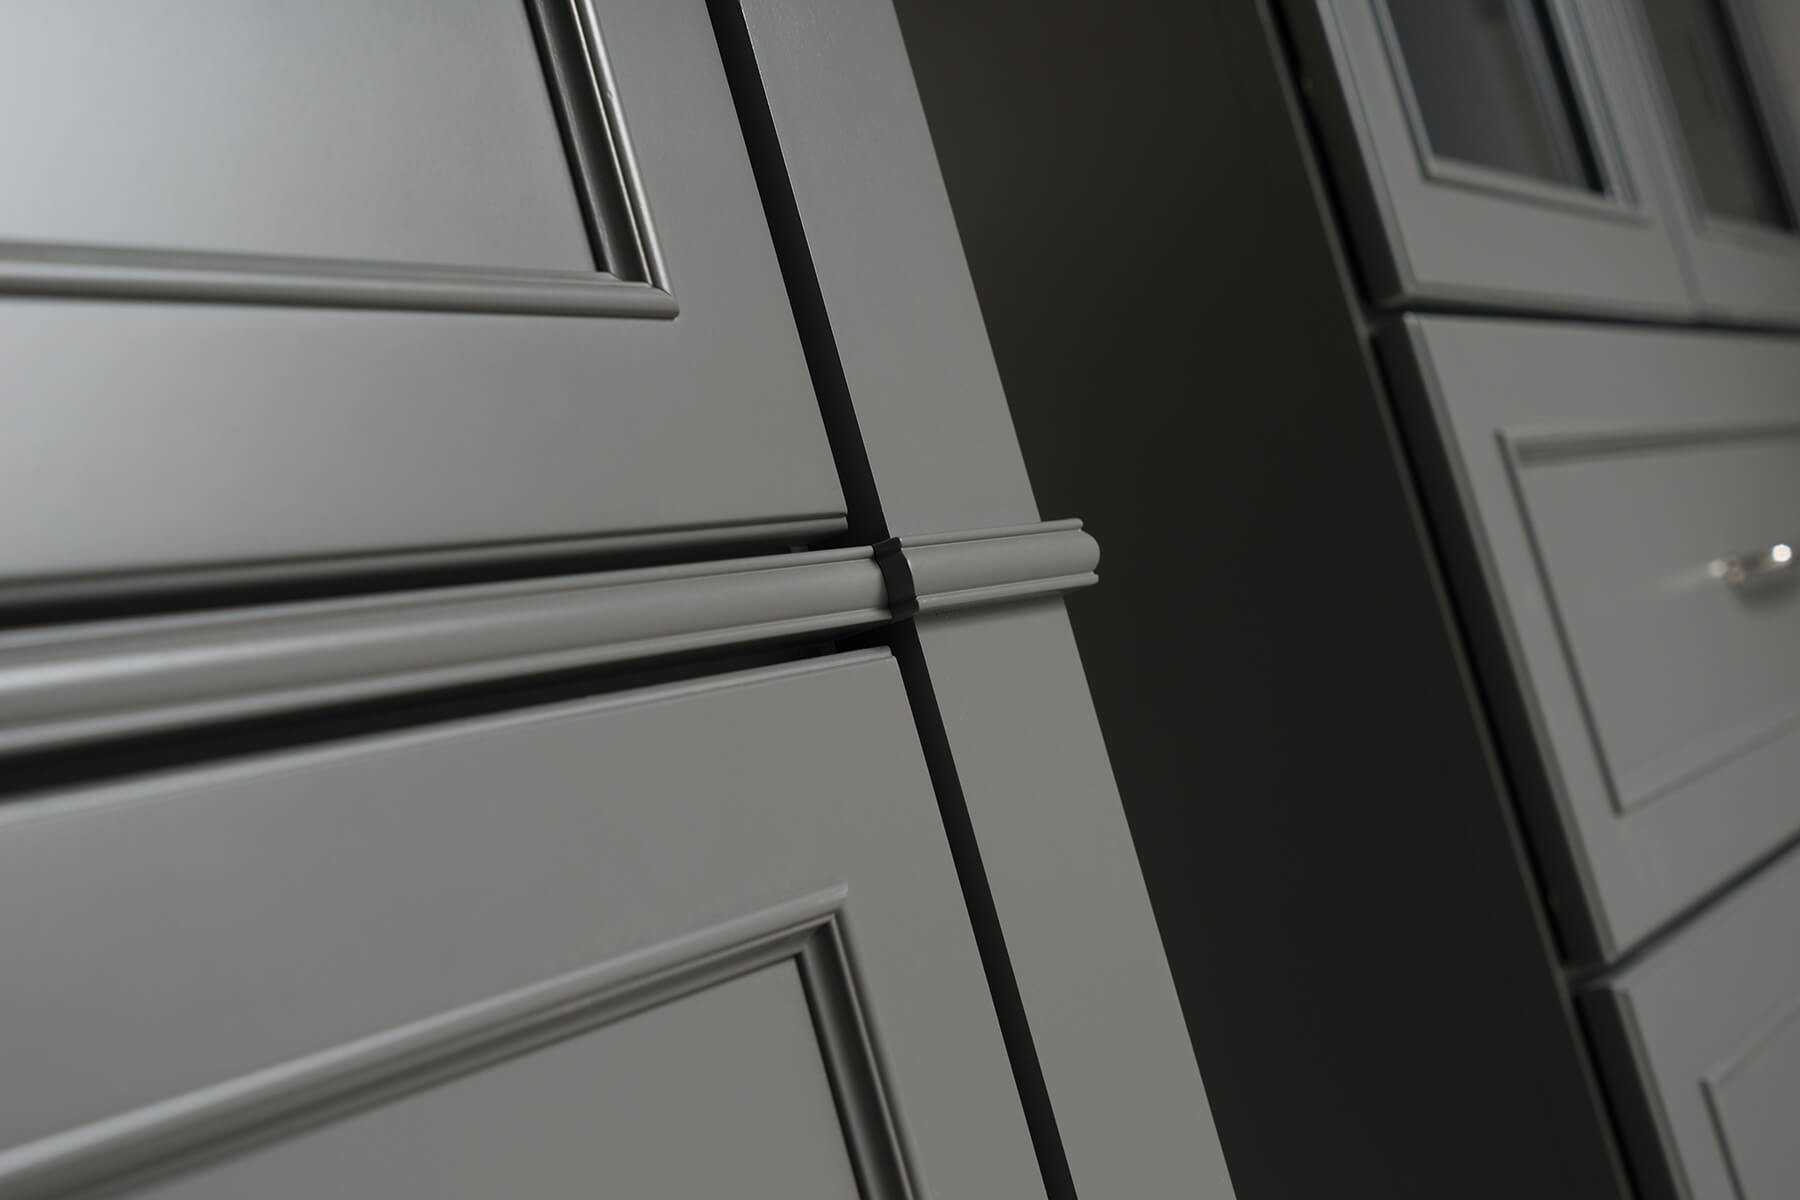 Dark gray painted bathroom vanity cabinets from Dura Supreme Cabinetry.